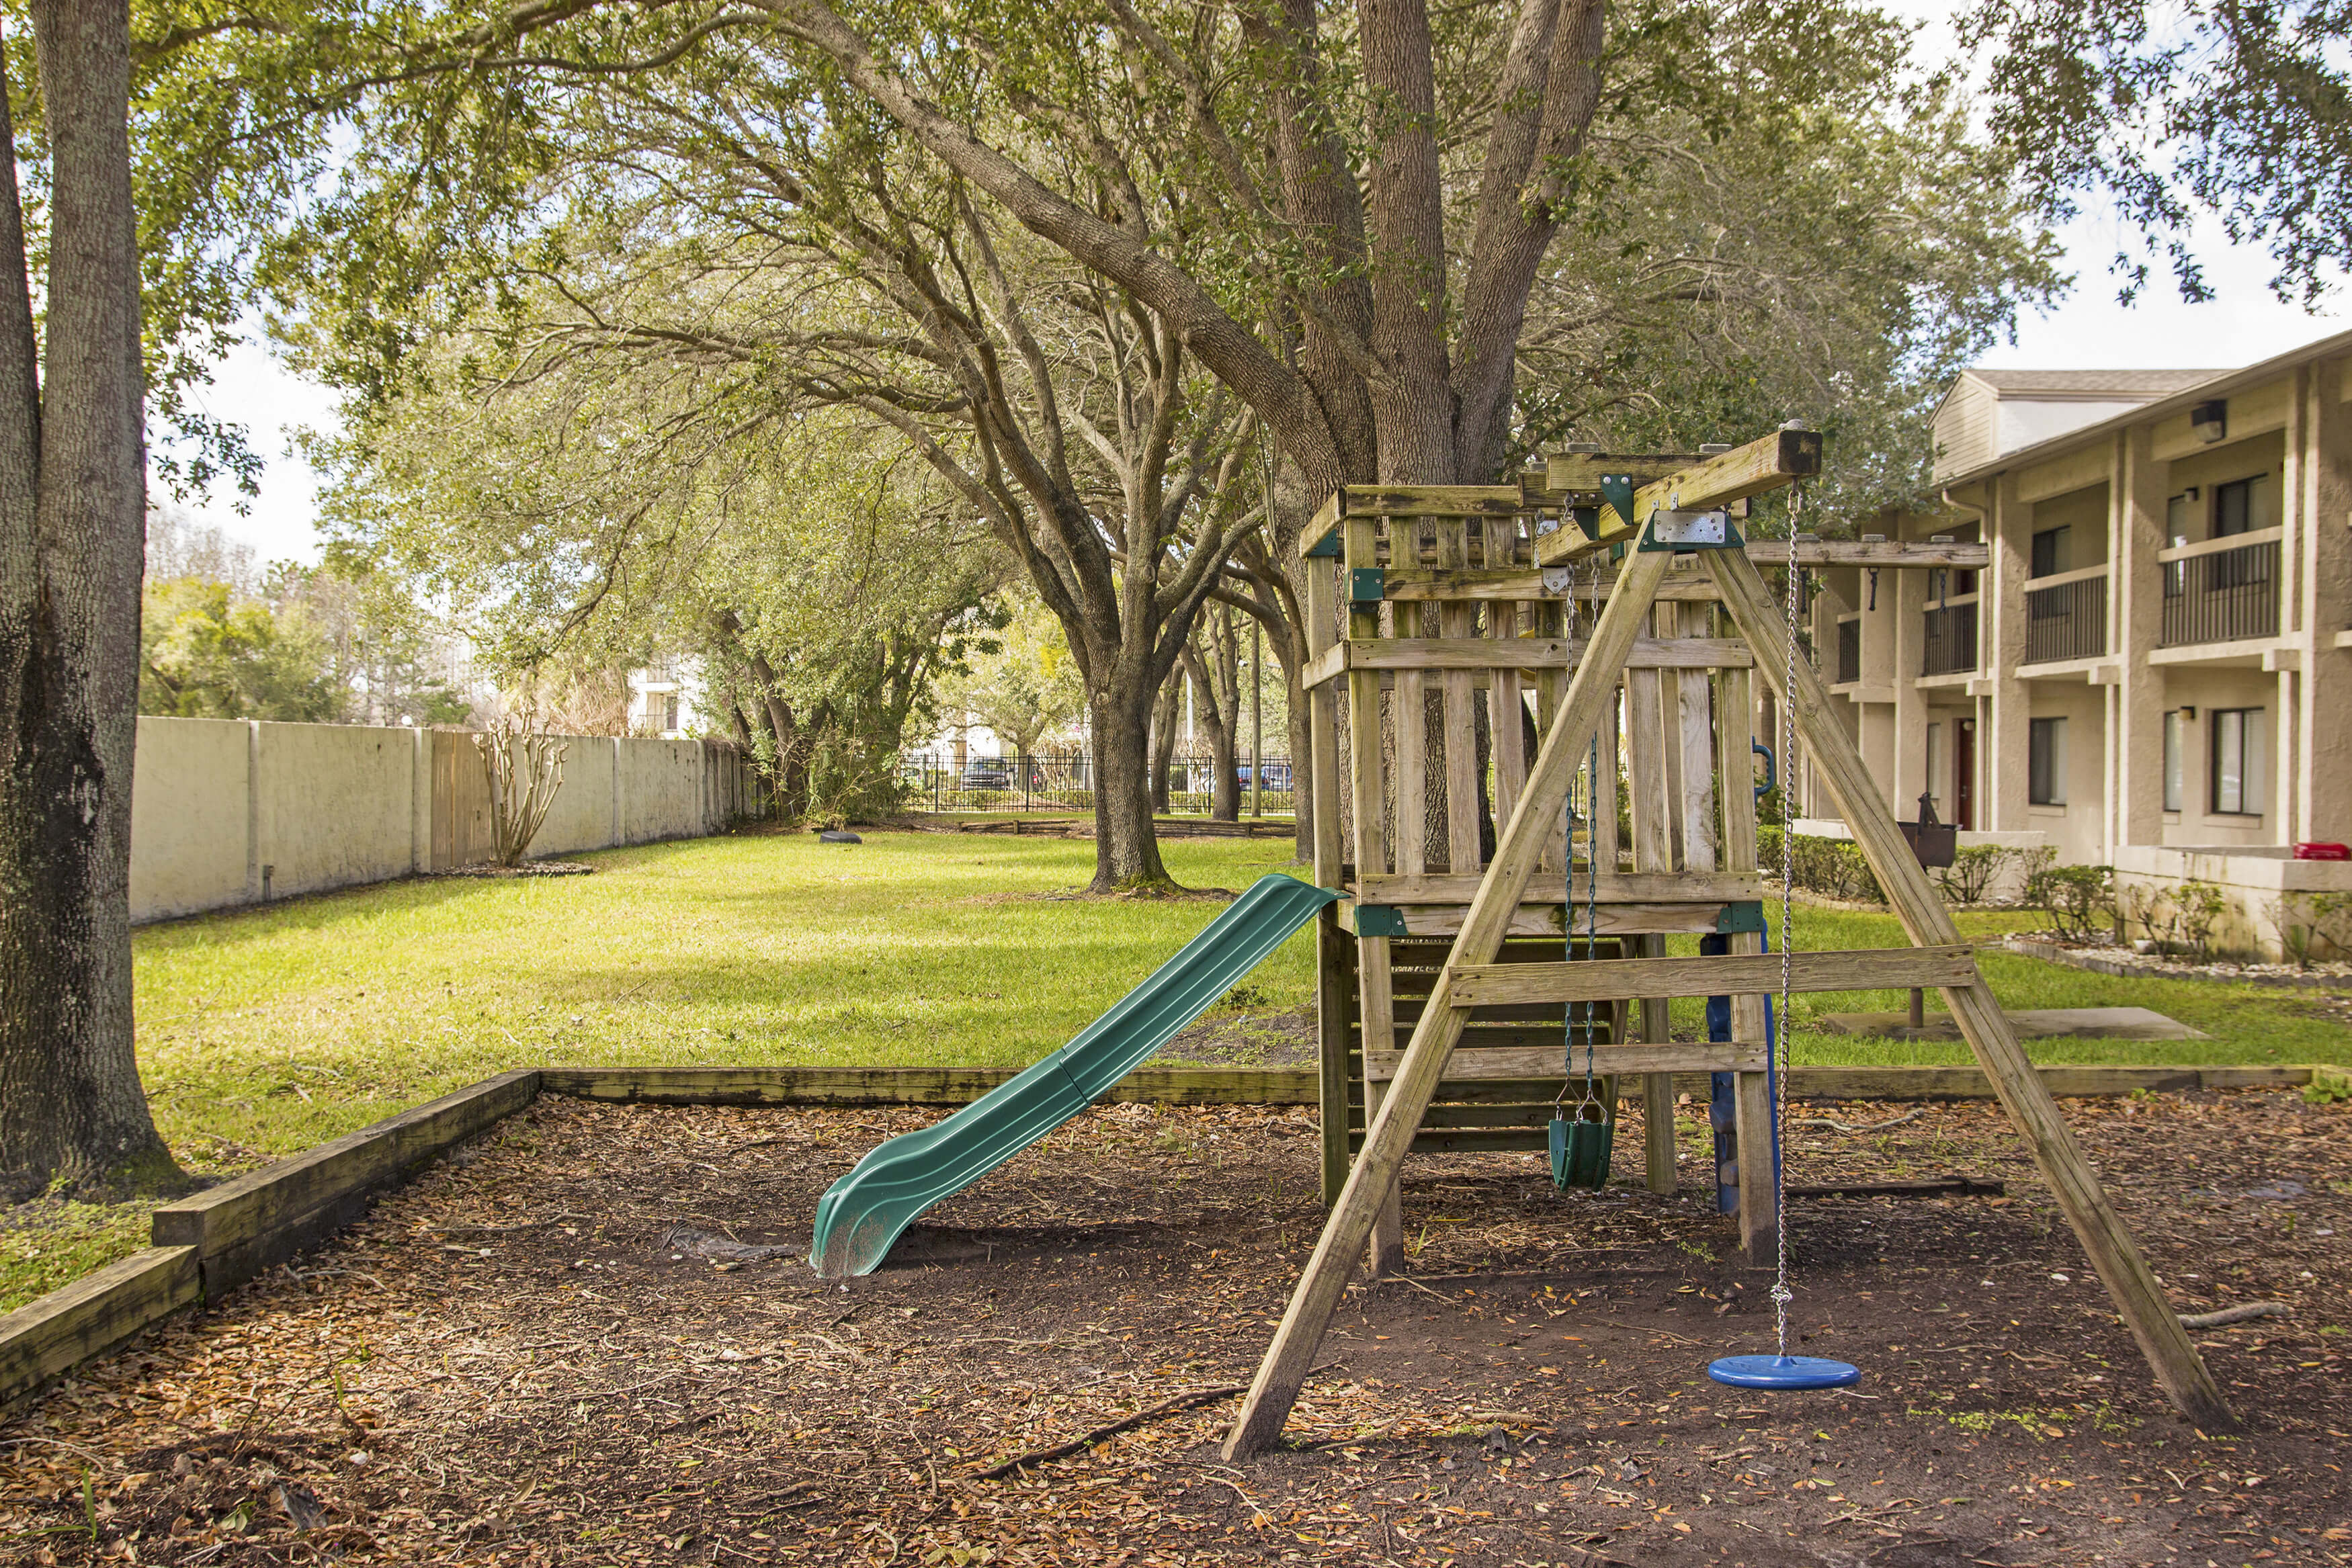 Club Orlando children's play area with plenty of space to have fun under the shade of the trees